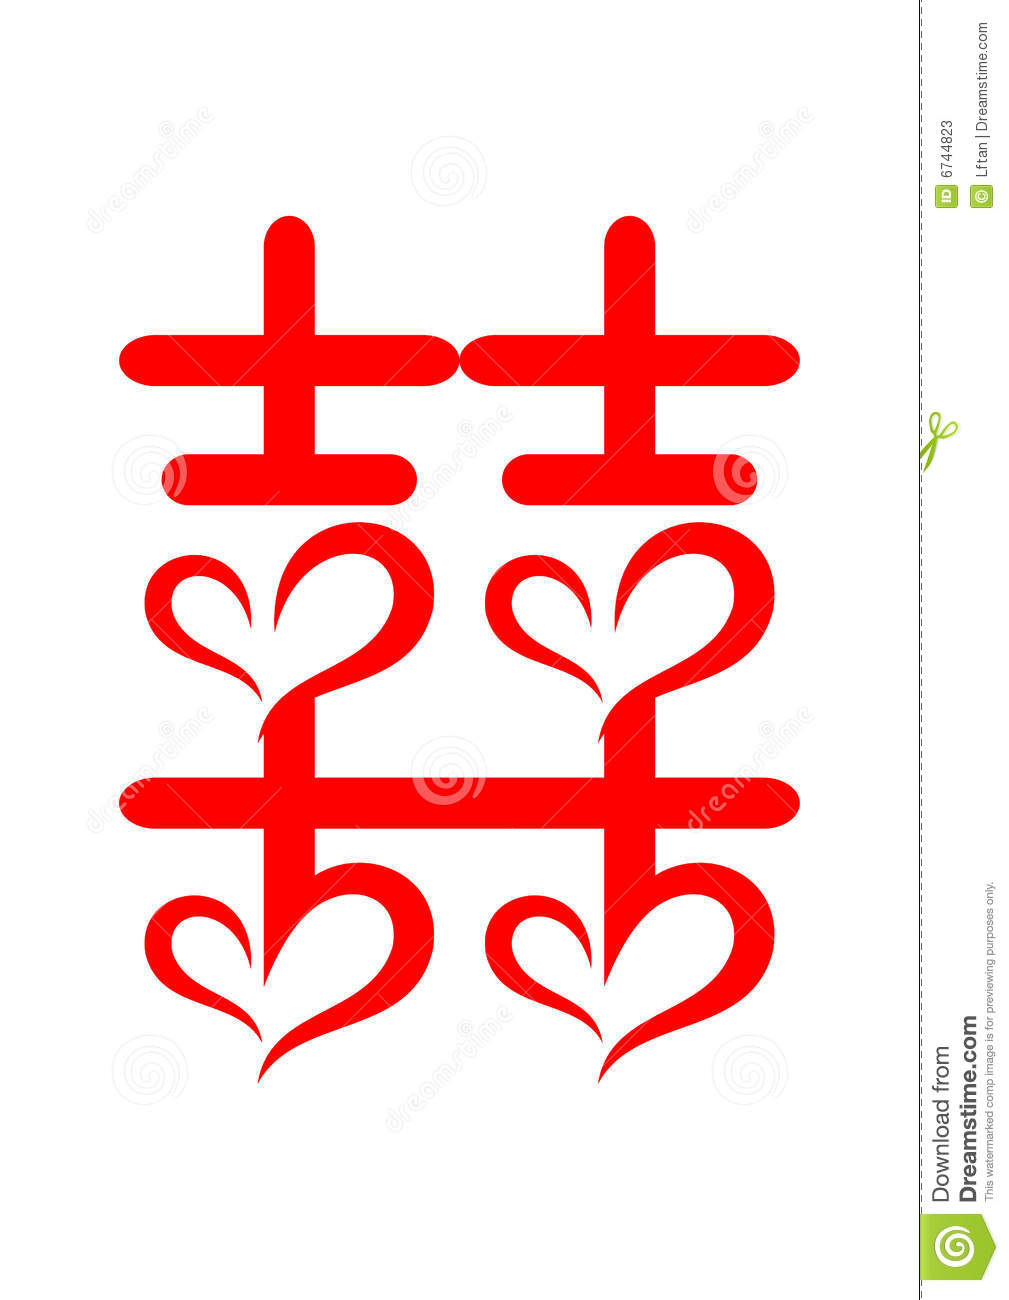 Double happiness clipart free svg freeuse stock Double Happiness Stock Photos - Image: 6744823 svg freeuse stock